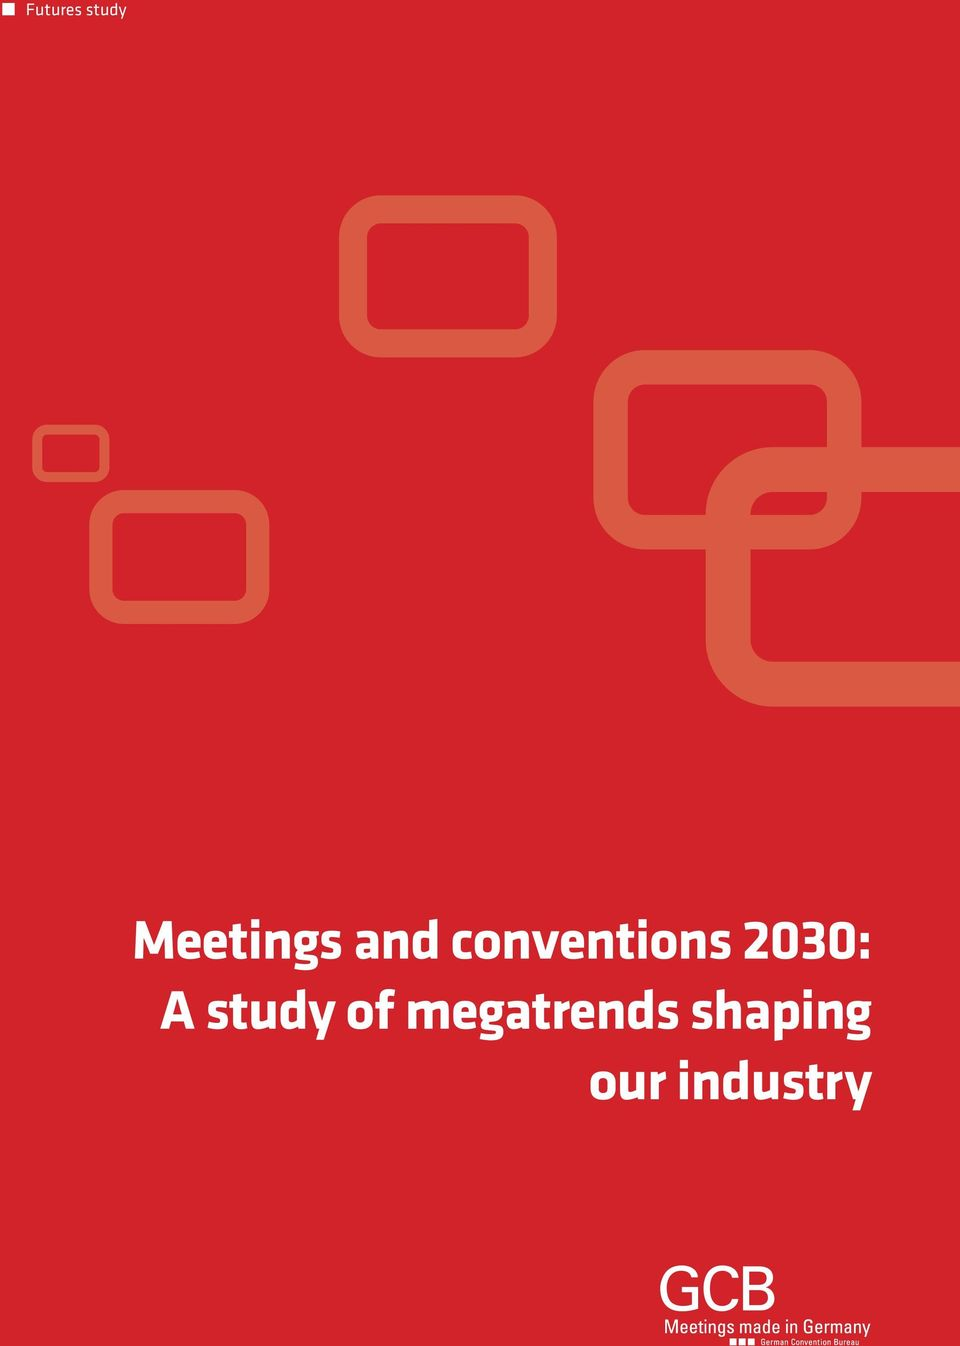 A study of megatrends